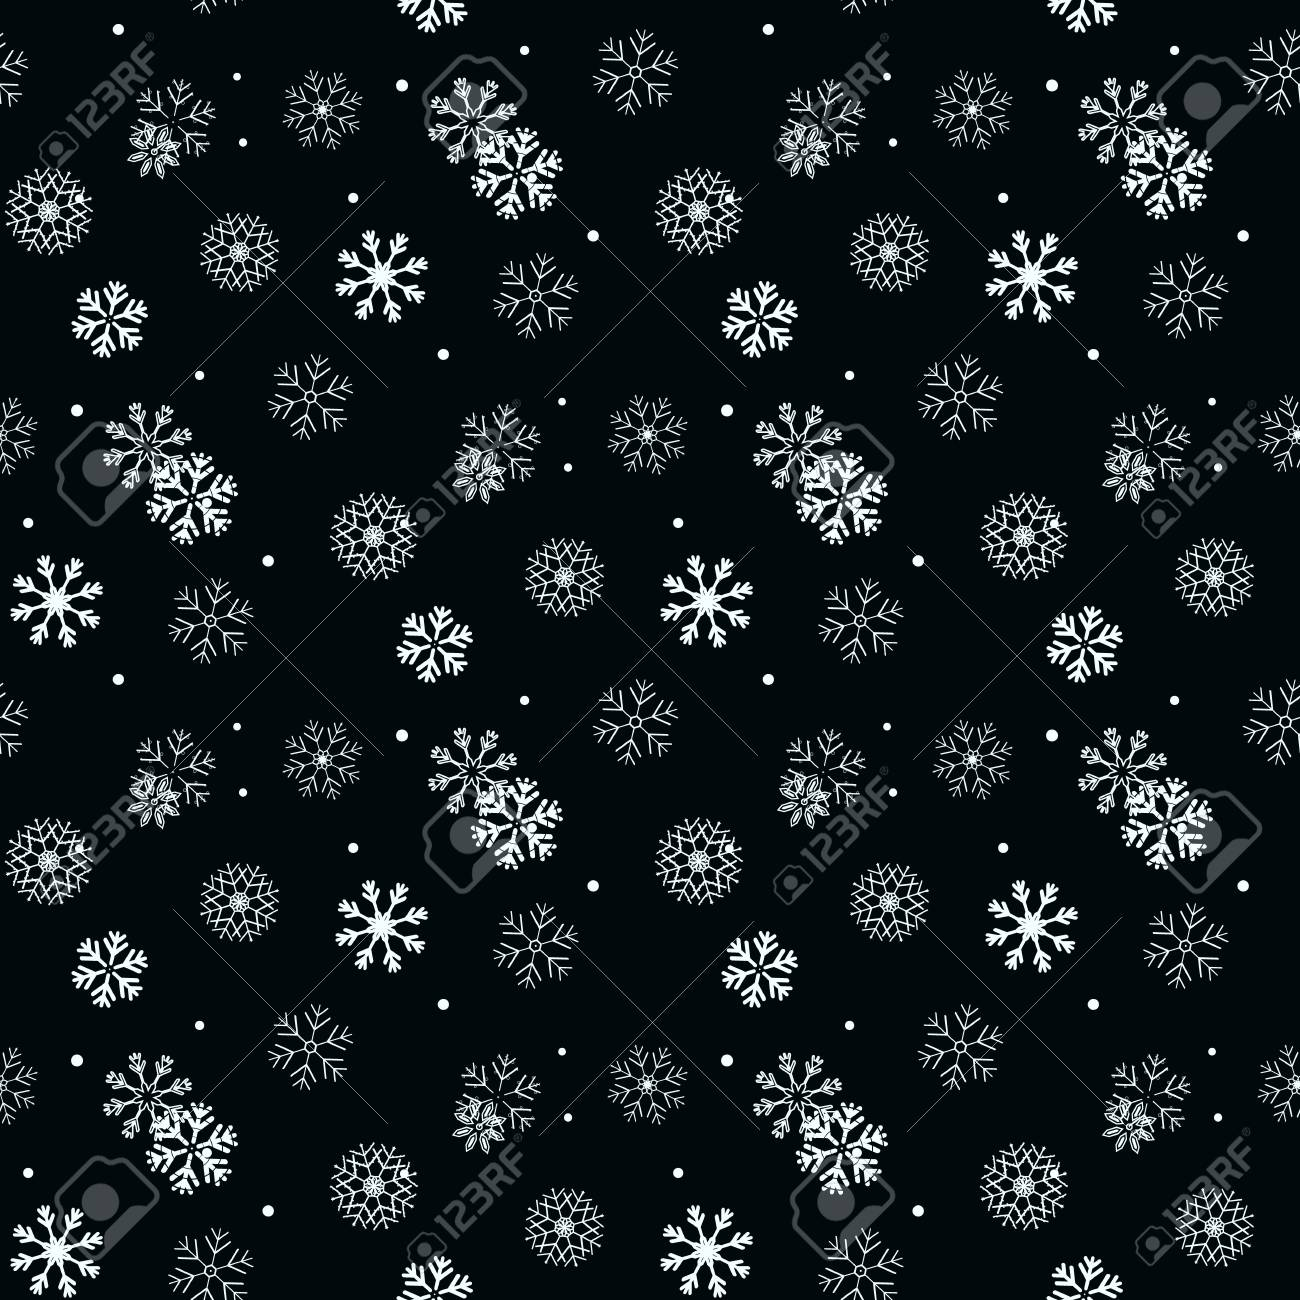 White Snowflake On Black Simple Seamless Pattern Abstract Wallpaper Wrapping Decoration Symbol Of Winter Merry Christmas Holiday Happy New Year